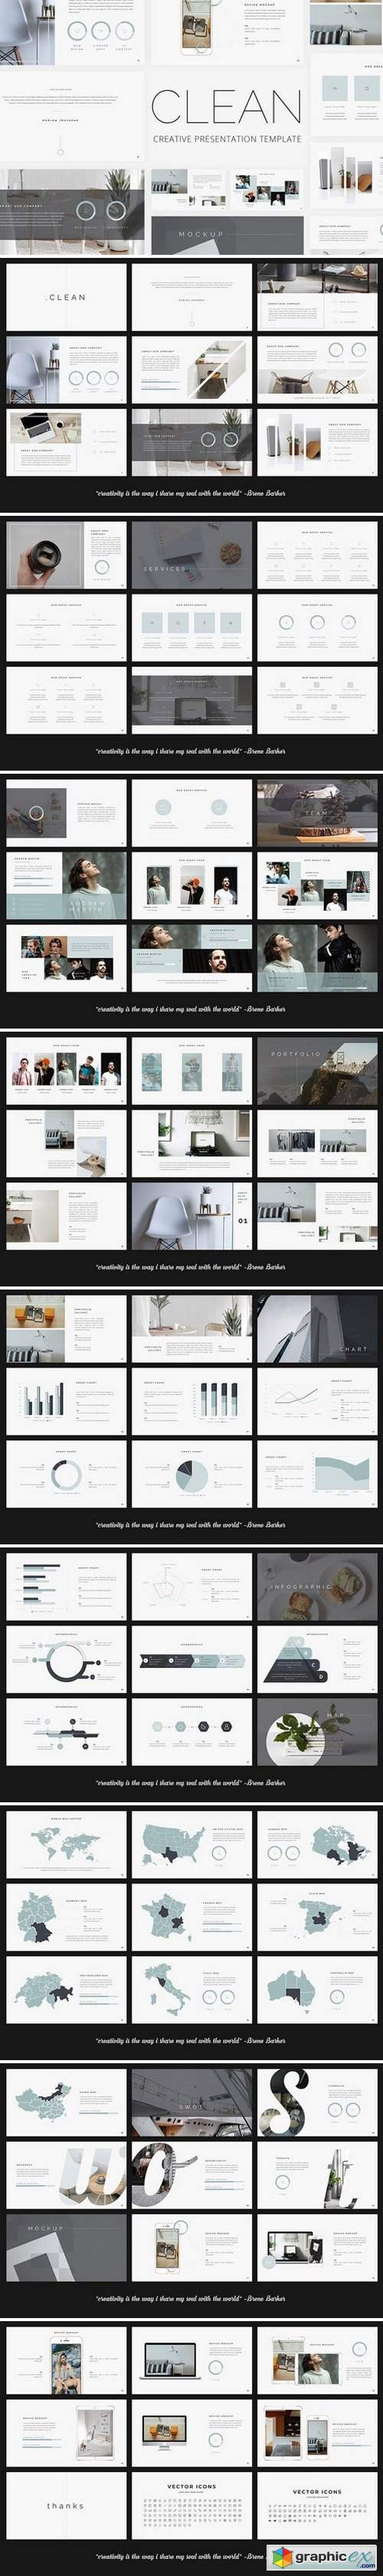 Clean - Creative PowerPoint Template